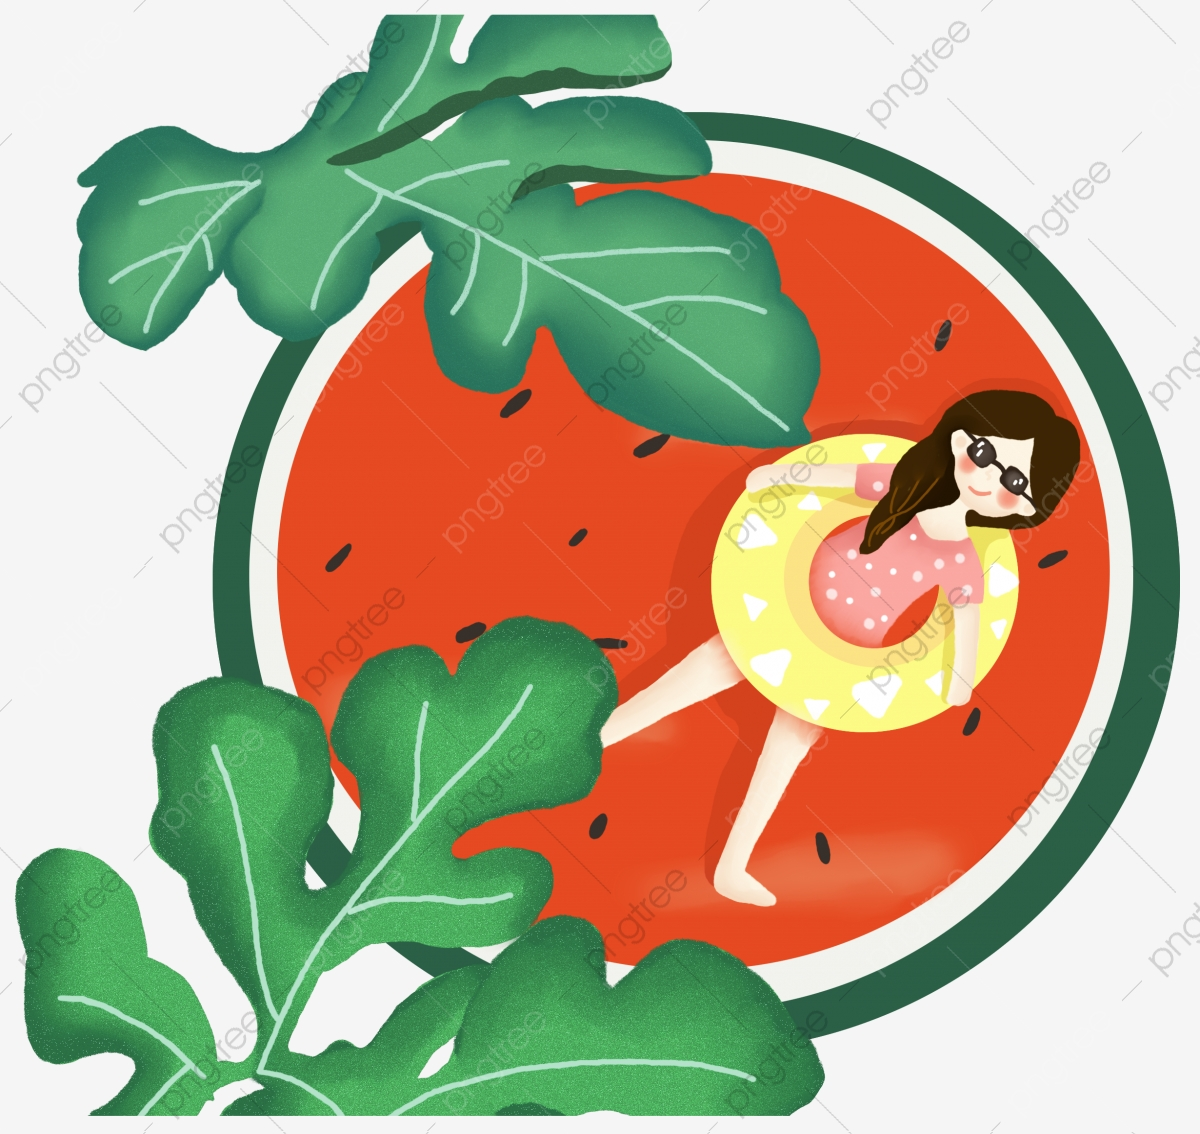 Heat clipart file. Great small summer watermelon